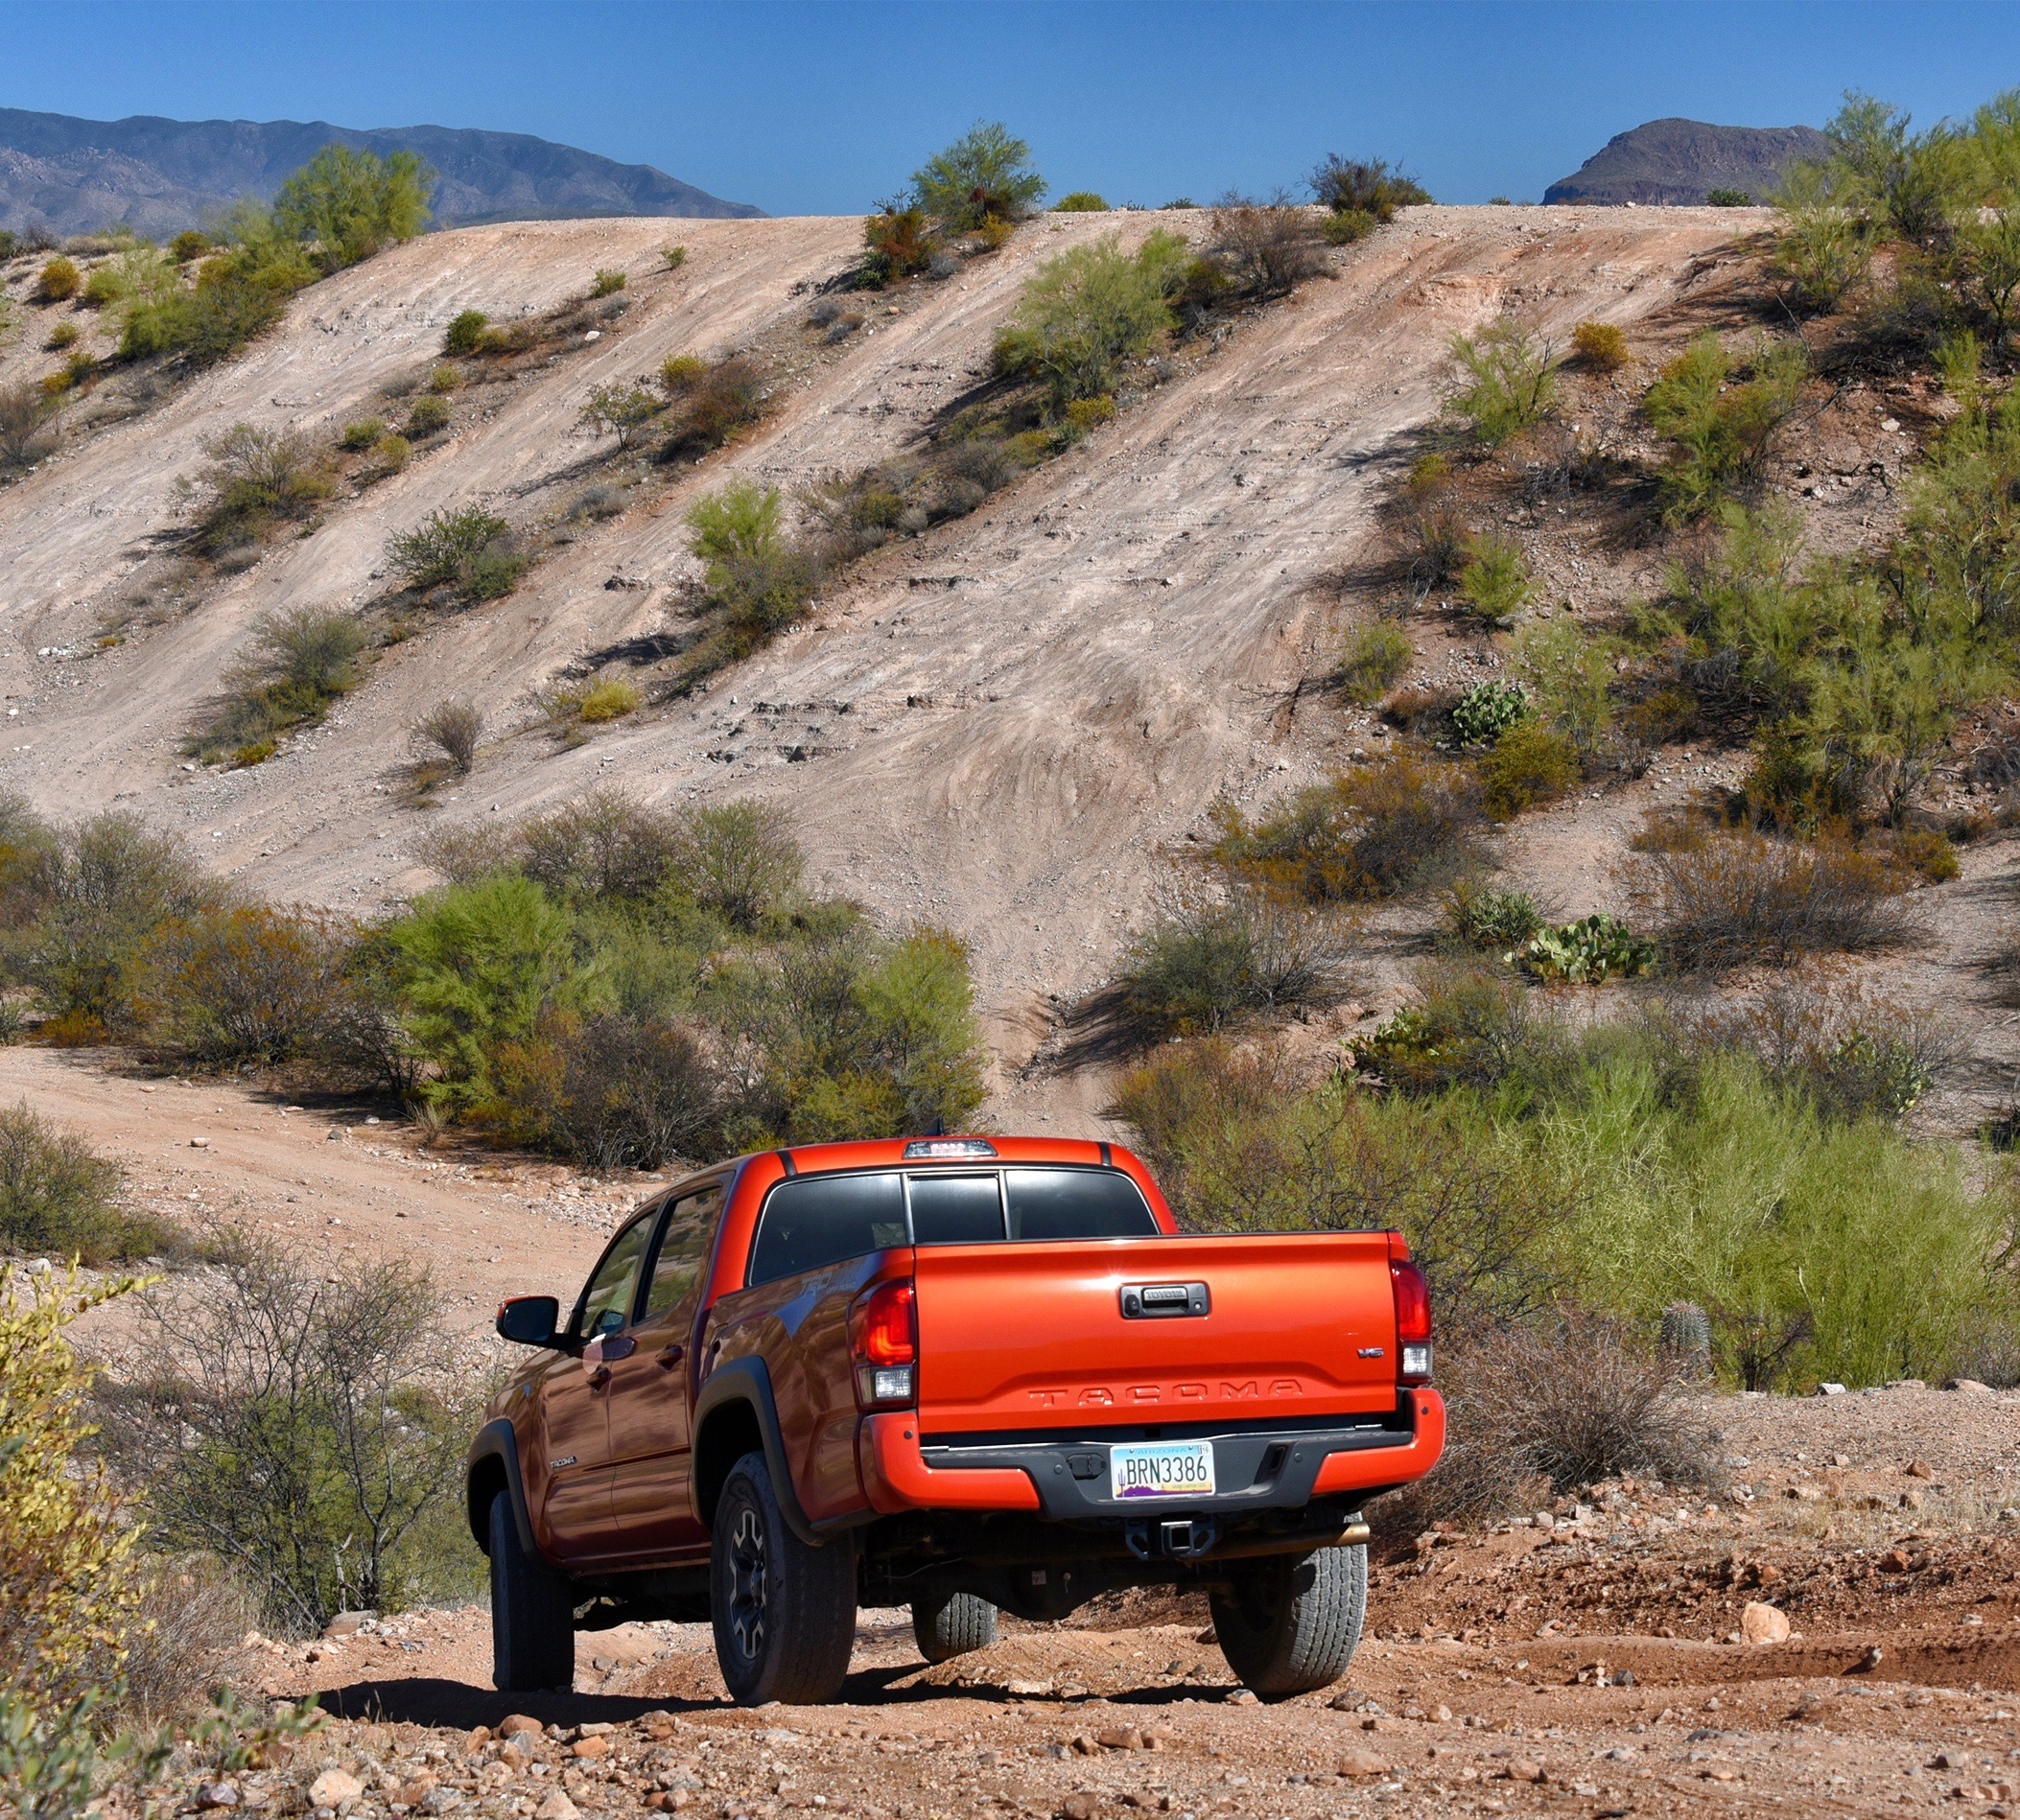 Others reported truck very capable off pavement | Elias